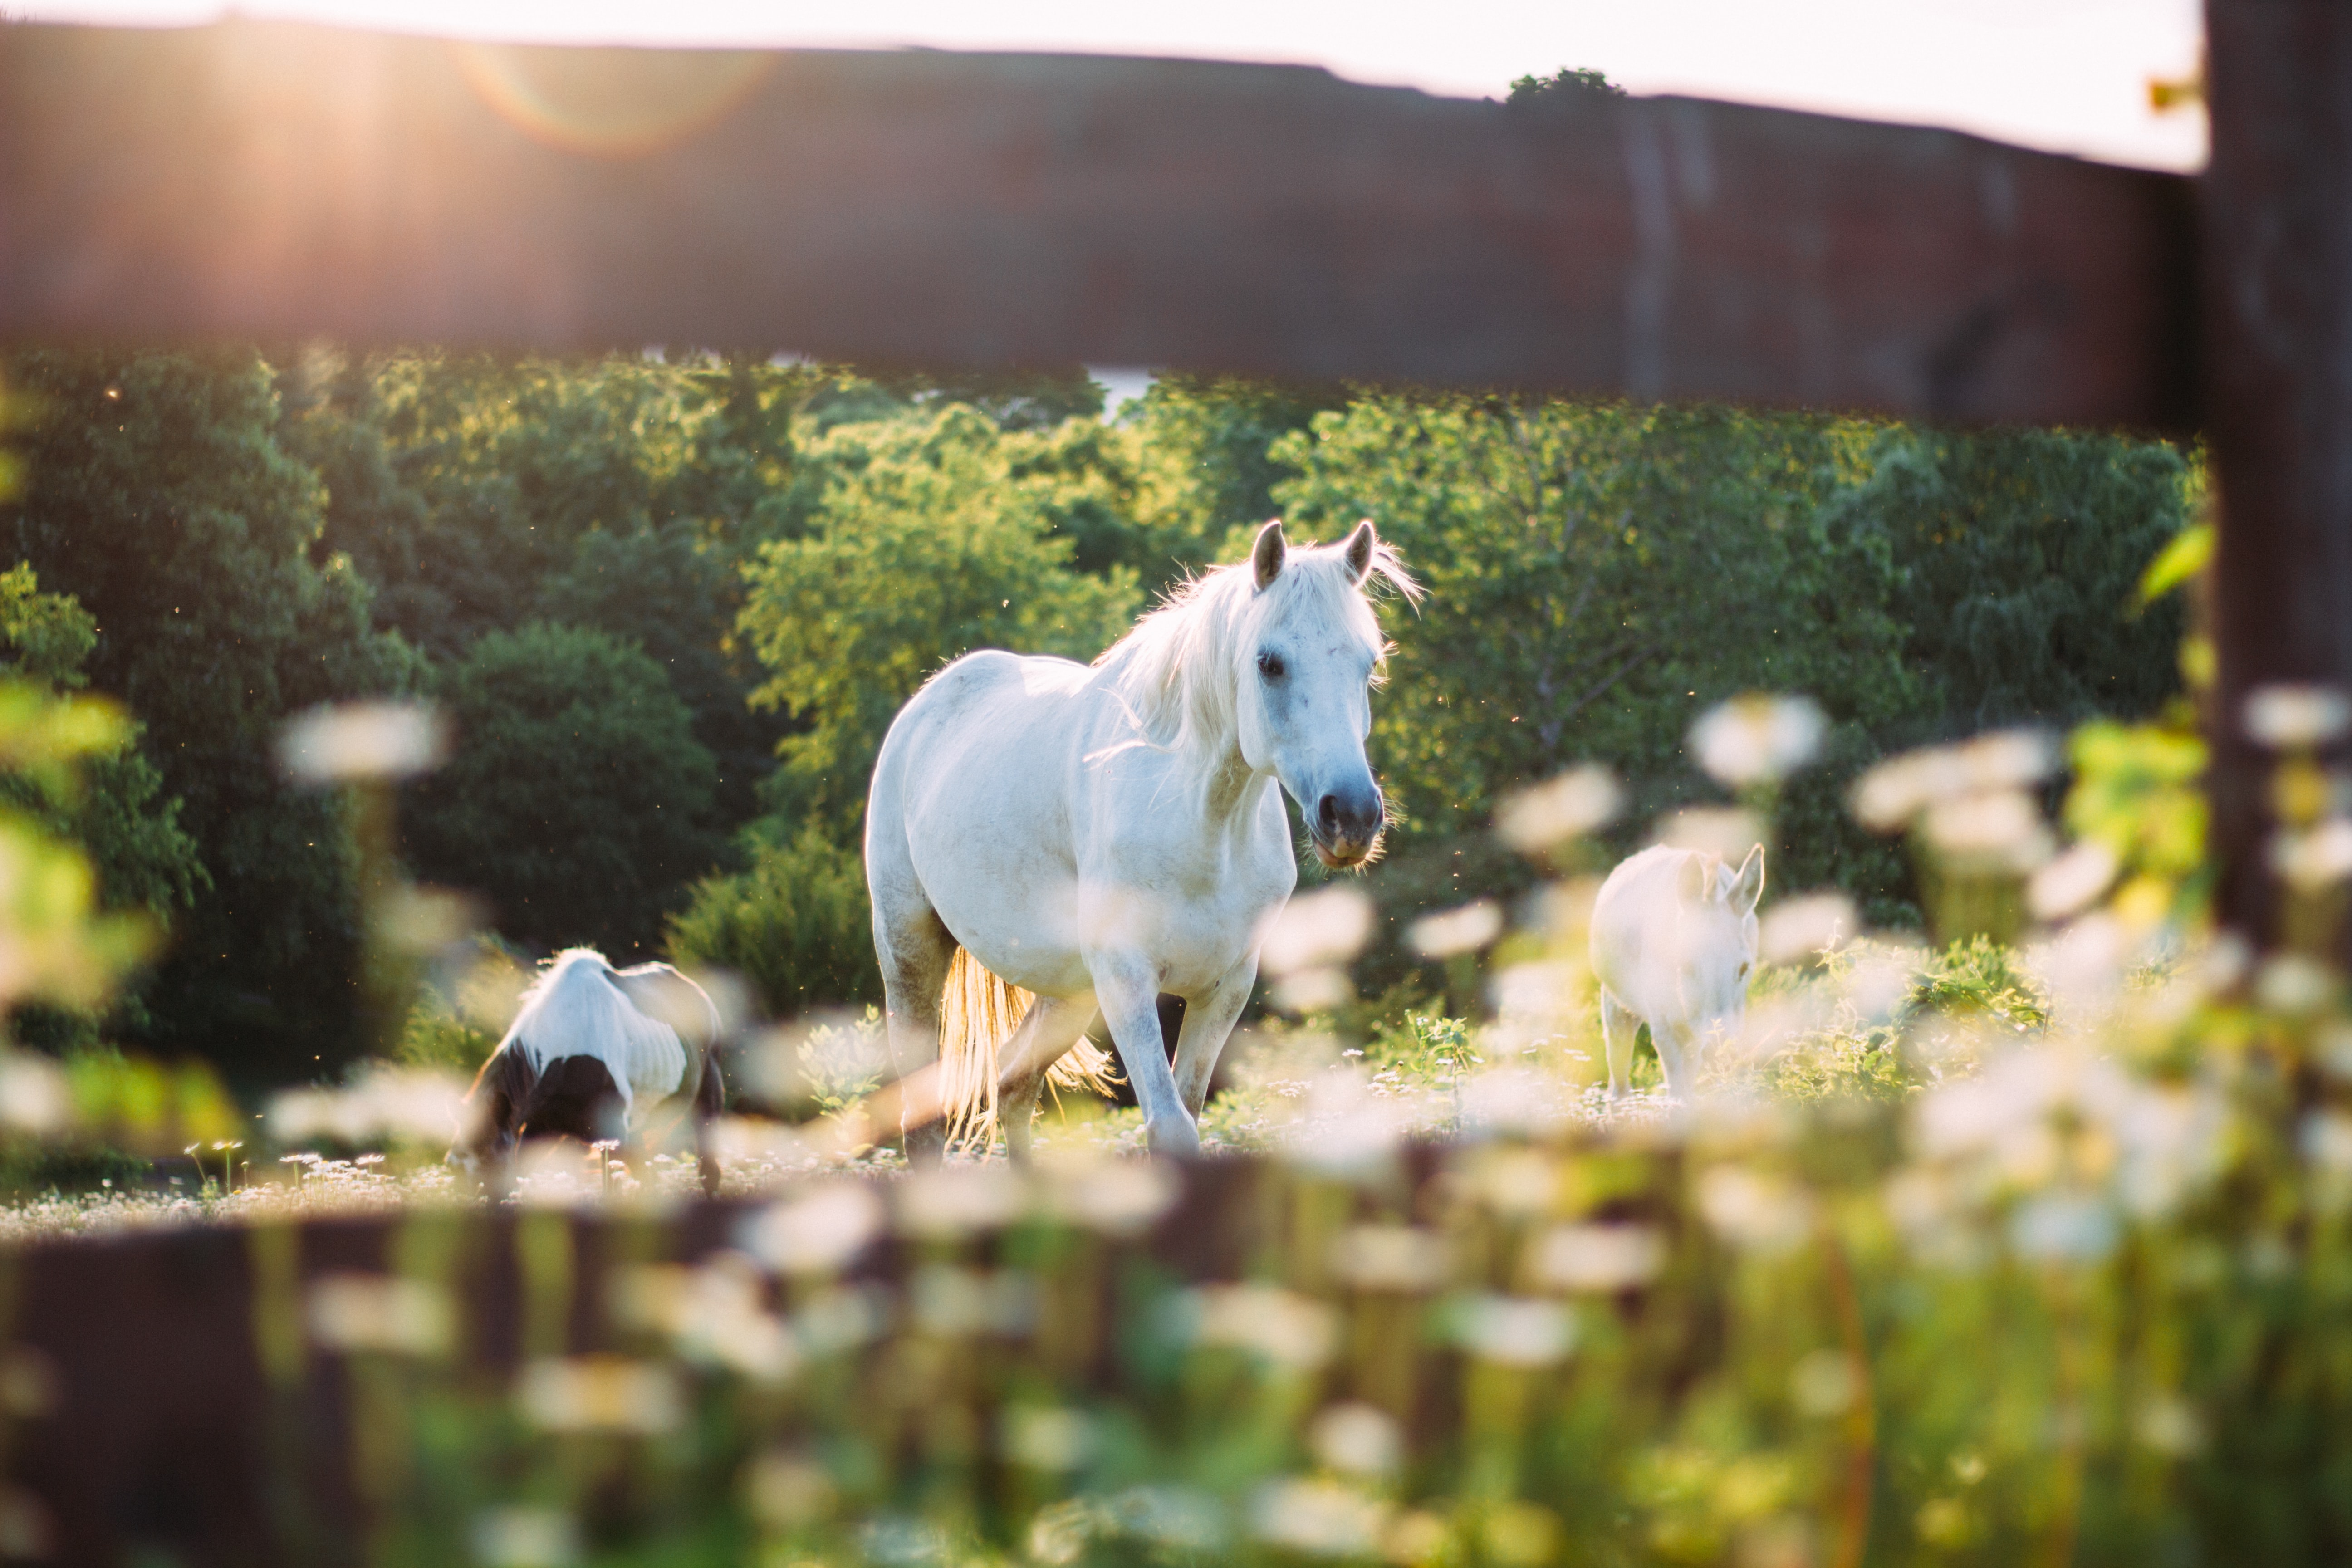 A white horse and two foals seen through a wooden fence